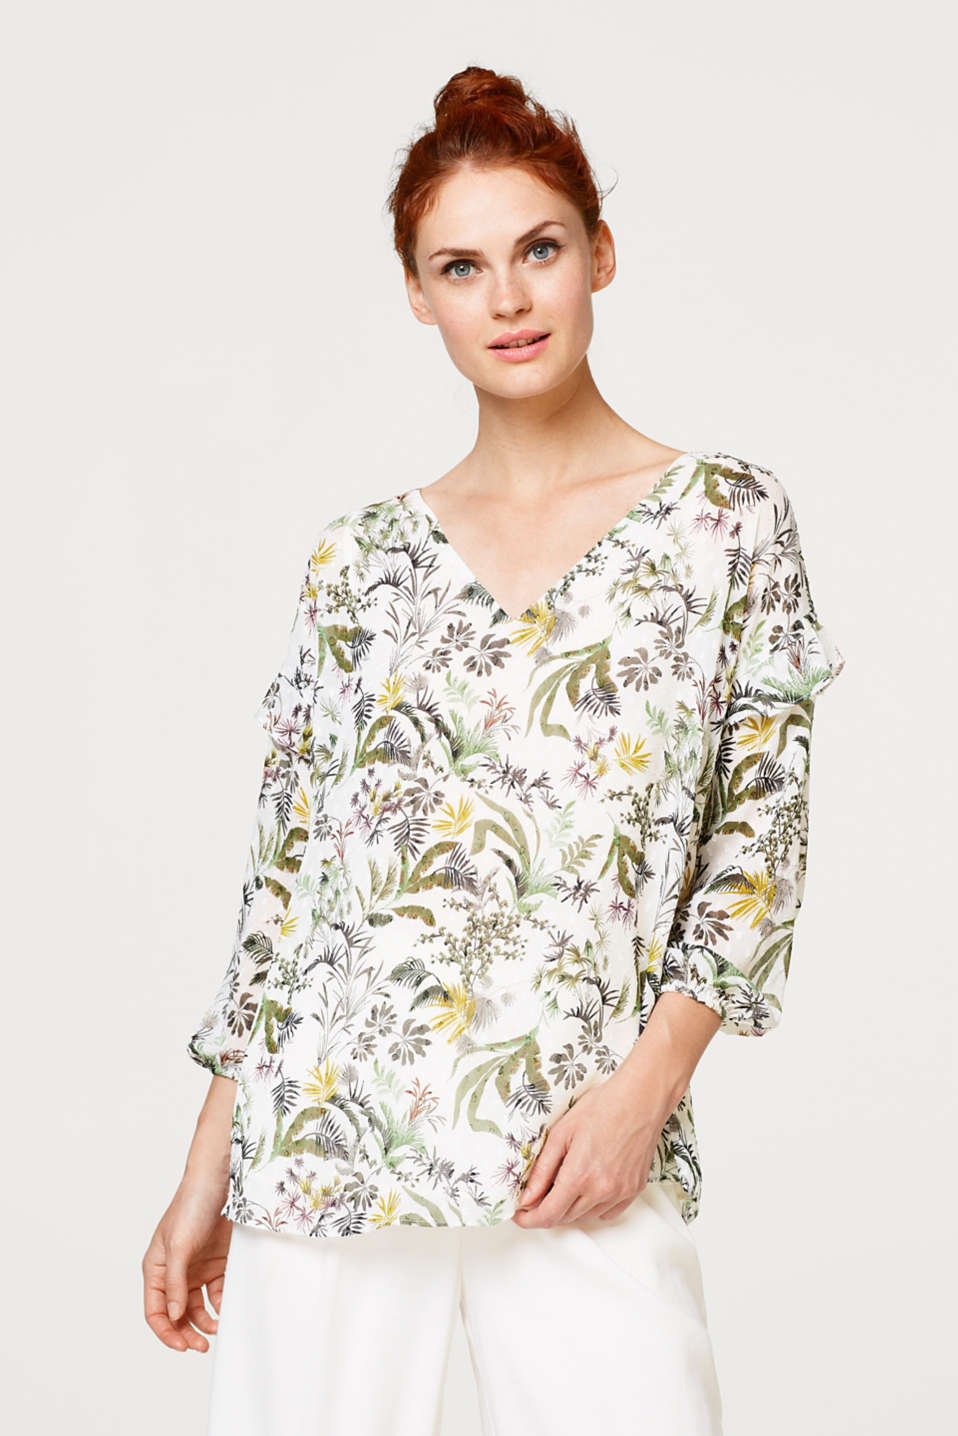 Esprit - Printed blouse made of crinkle chiffon with woven polka dots